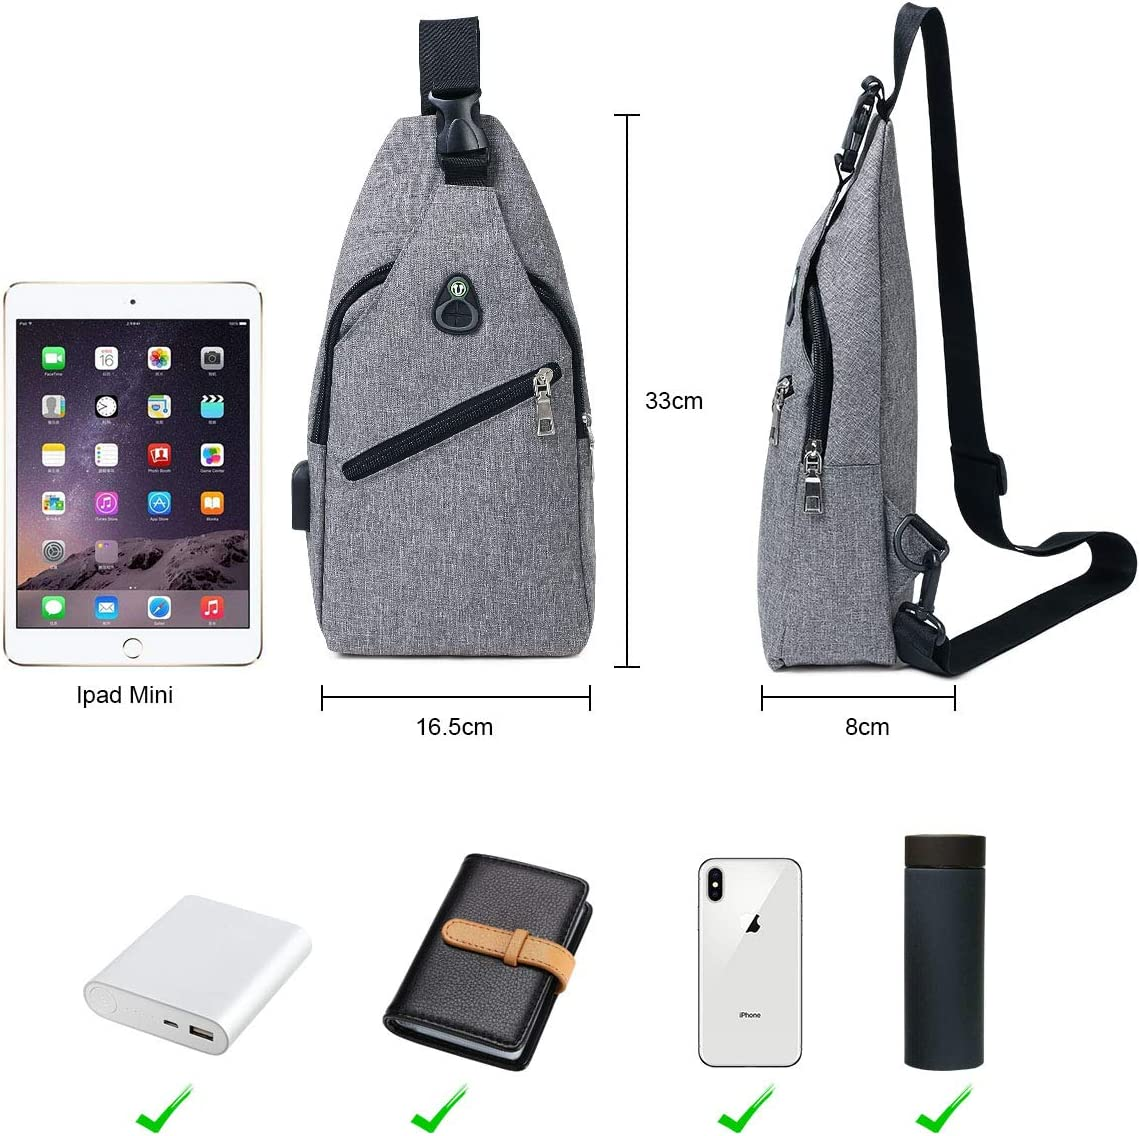 Chest Bag with USB Charging Port flintronic Sling Bag Include 1*USB Cable Men Women Lightweight Crossbody for Hiking,Cycling Traveling